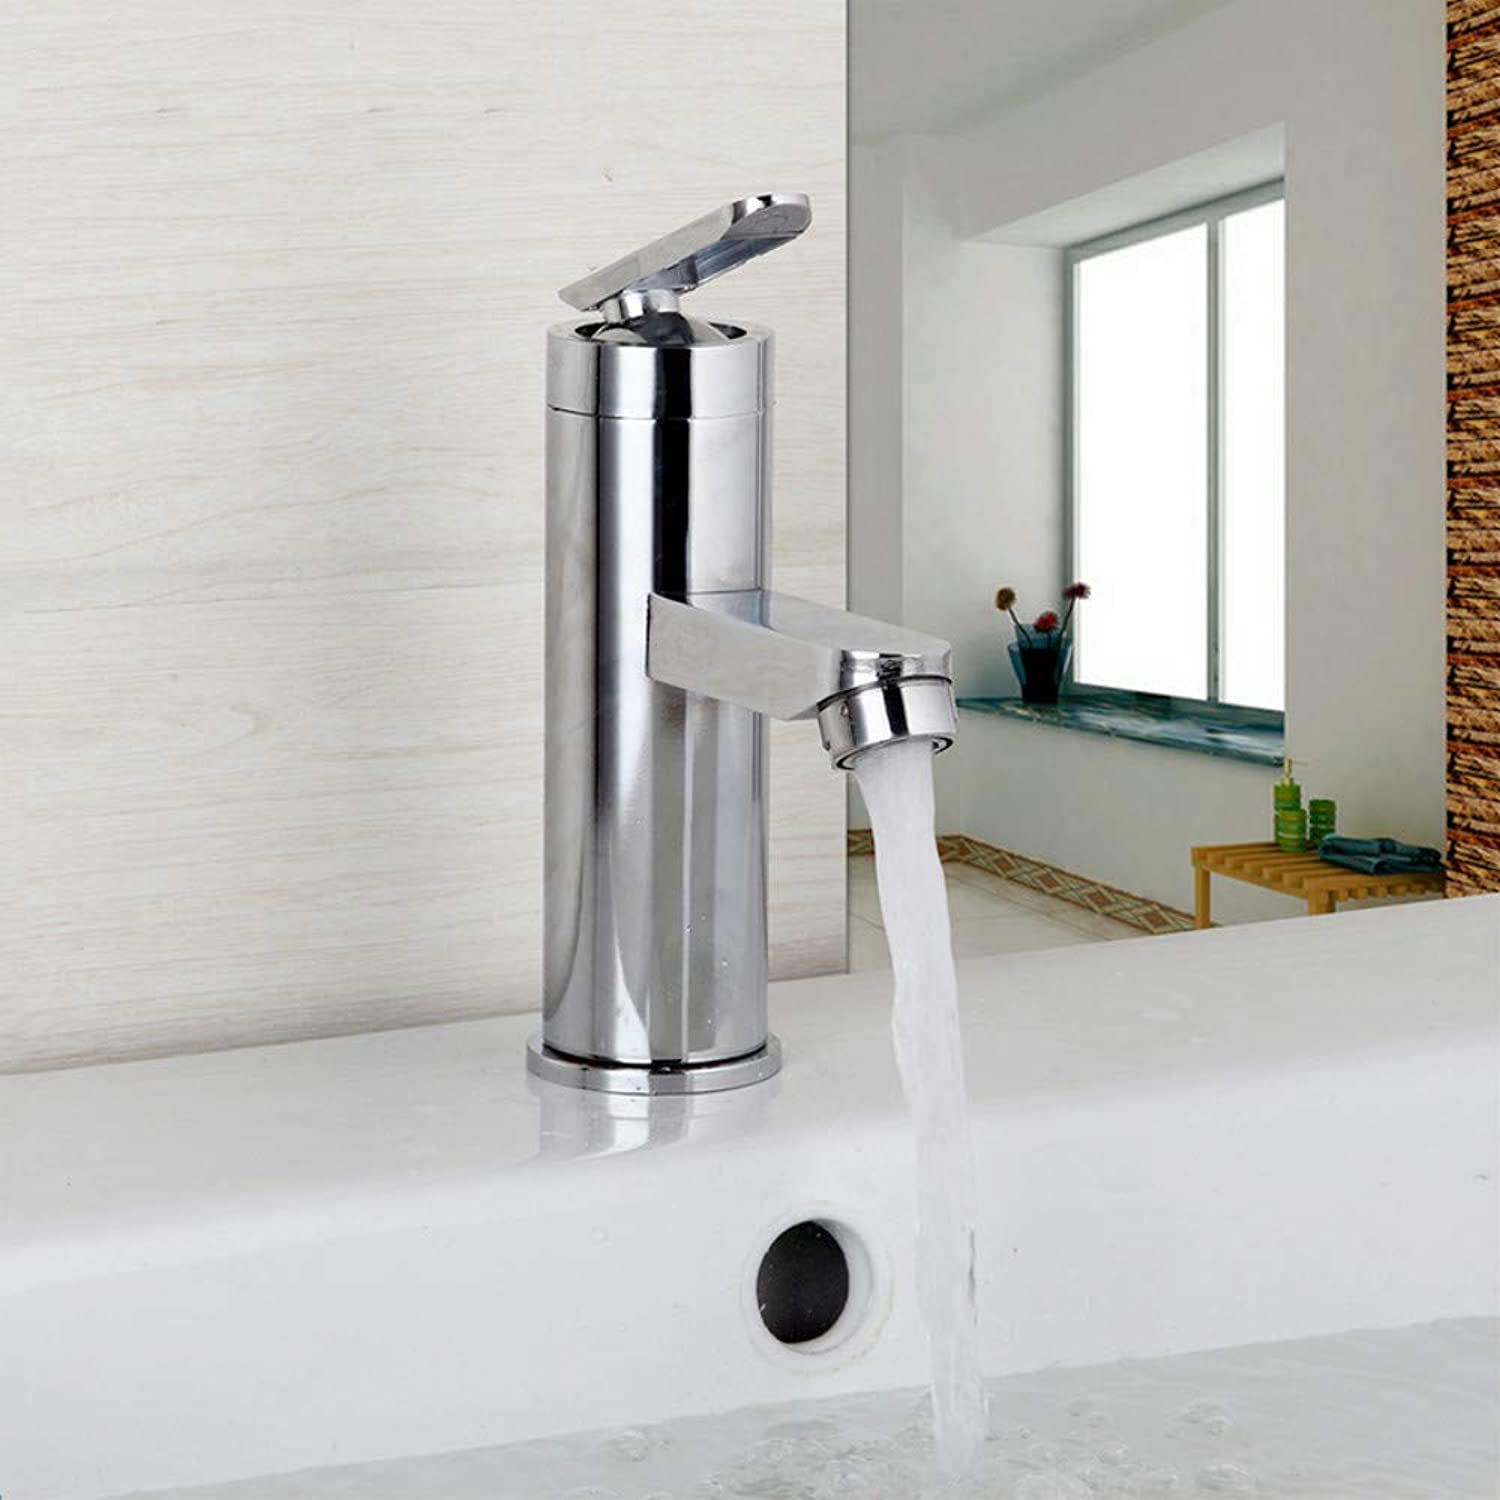 New Basin Faucet Bathroom Faucet Basin Mixer,Basin Tap Bathroom Faucet Deck Mounted Torneira